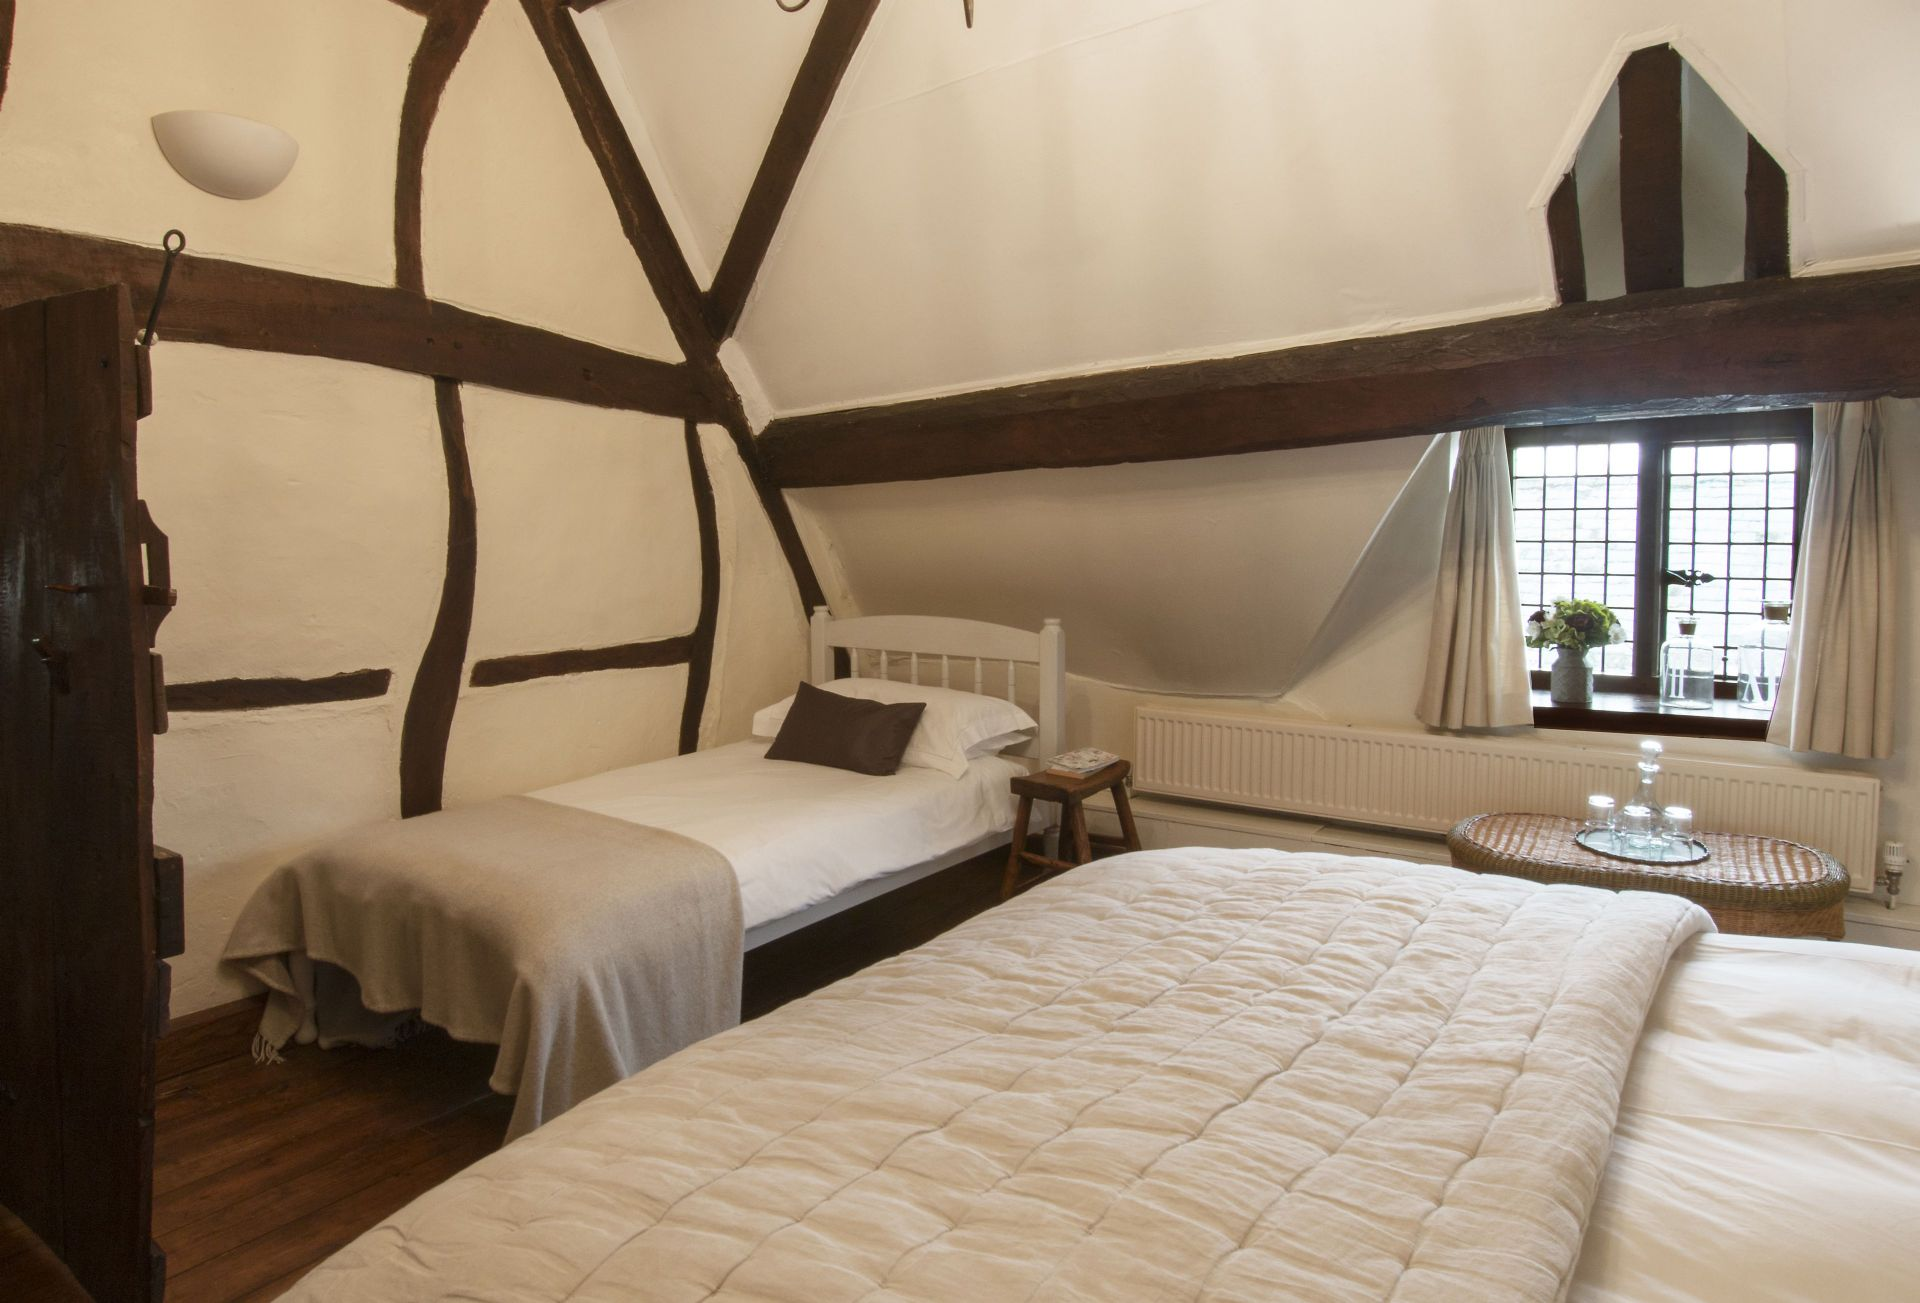 Second floor: Family bedroom with 6' super-king size bed and a single bed